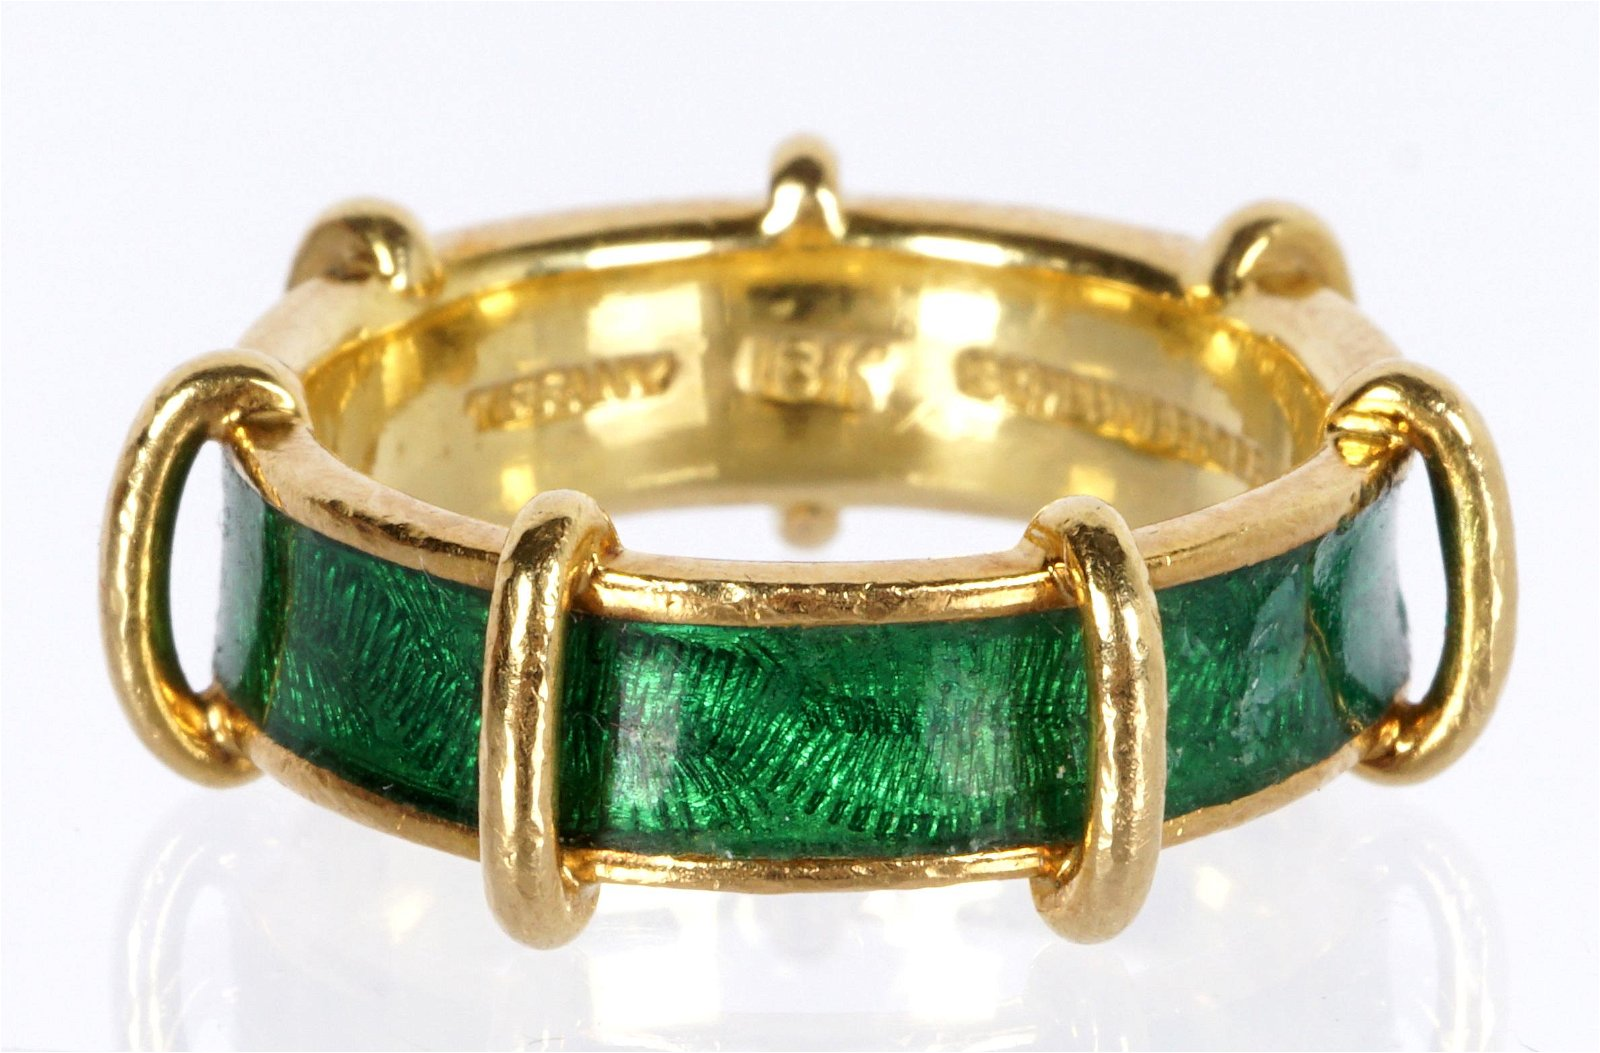 Schlumberger for Tiffany 18k Gold and Enamel Ring